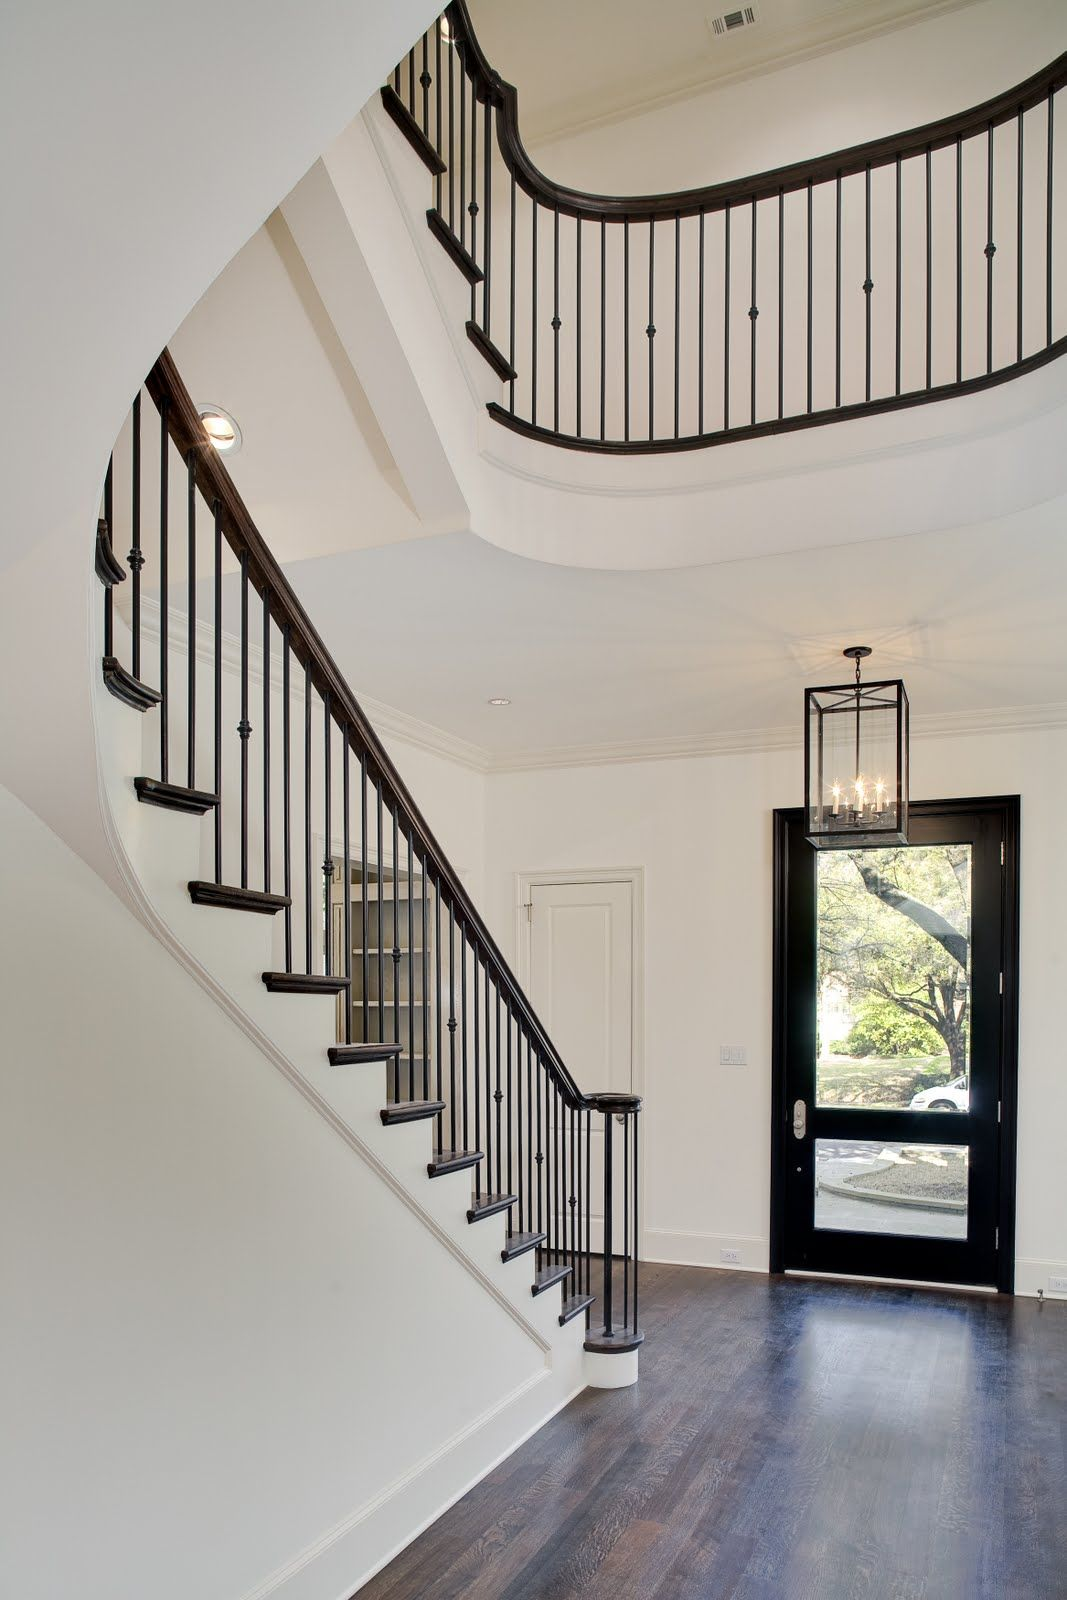 Dark Bannister With Iron Pegs And Hardwood Floors